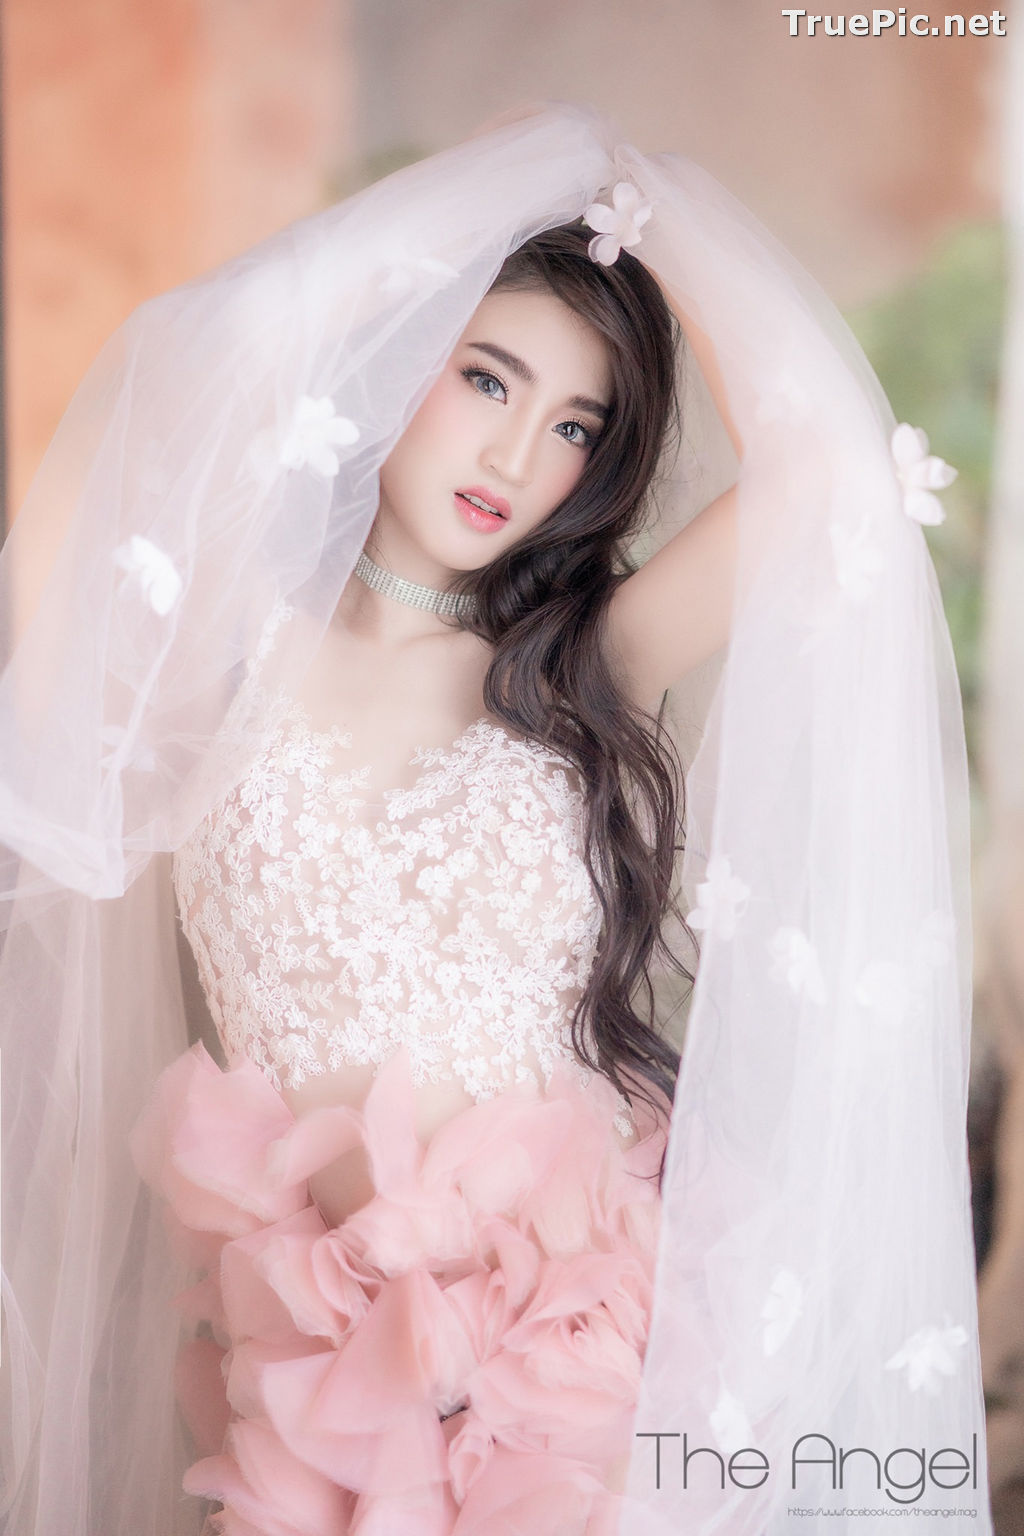 Image Thailand Model - Minggomut Maming Kongsawas - Beautiful Bride Concept - TruePic.net - Picture-6